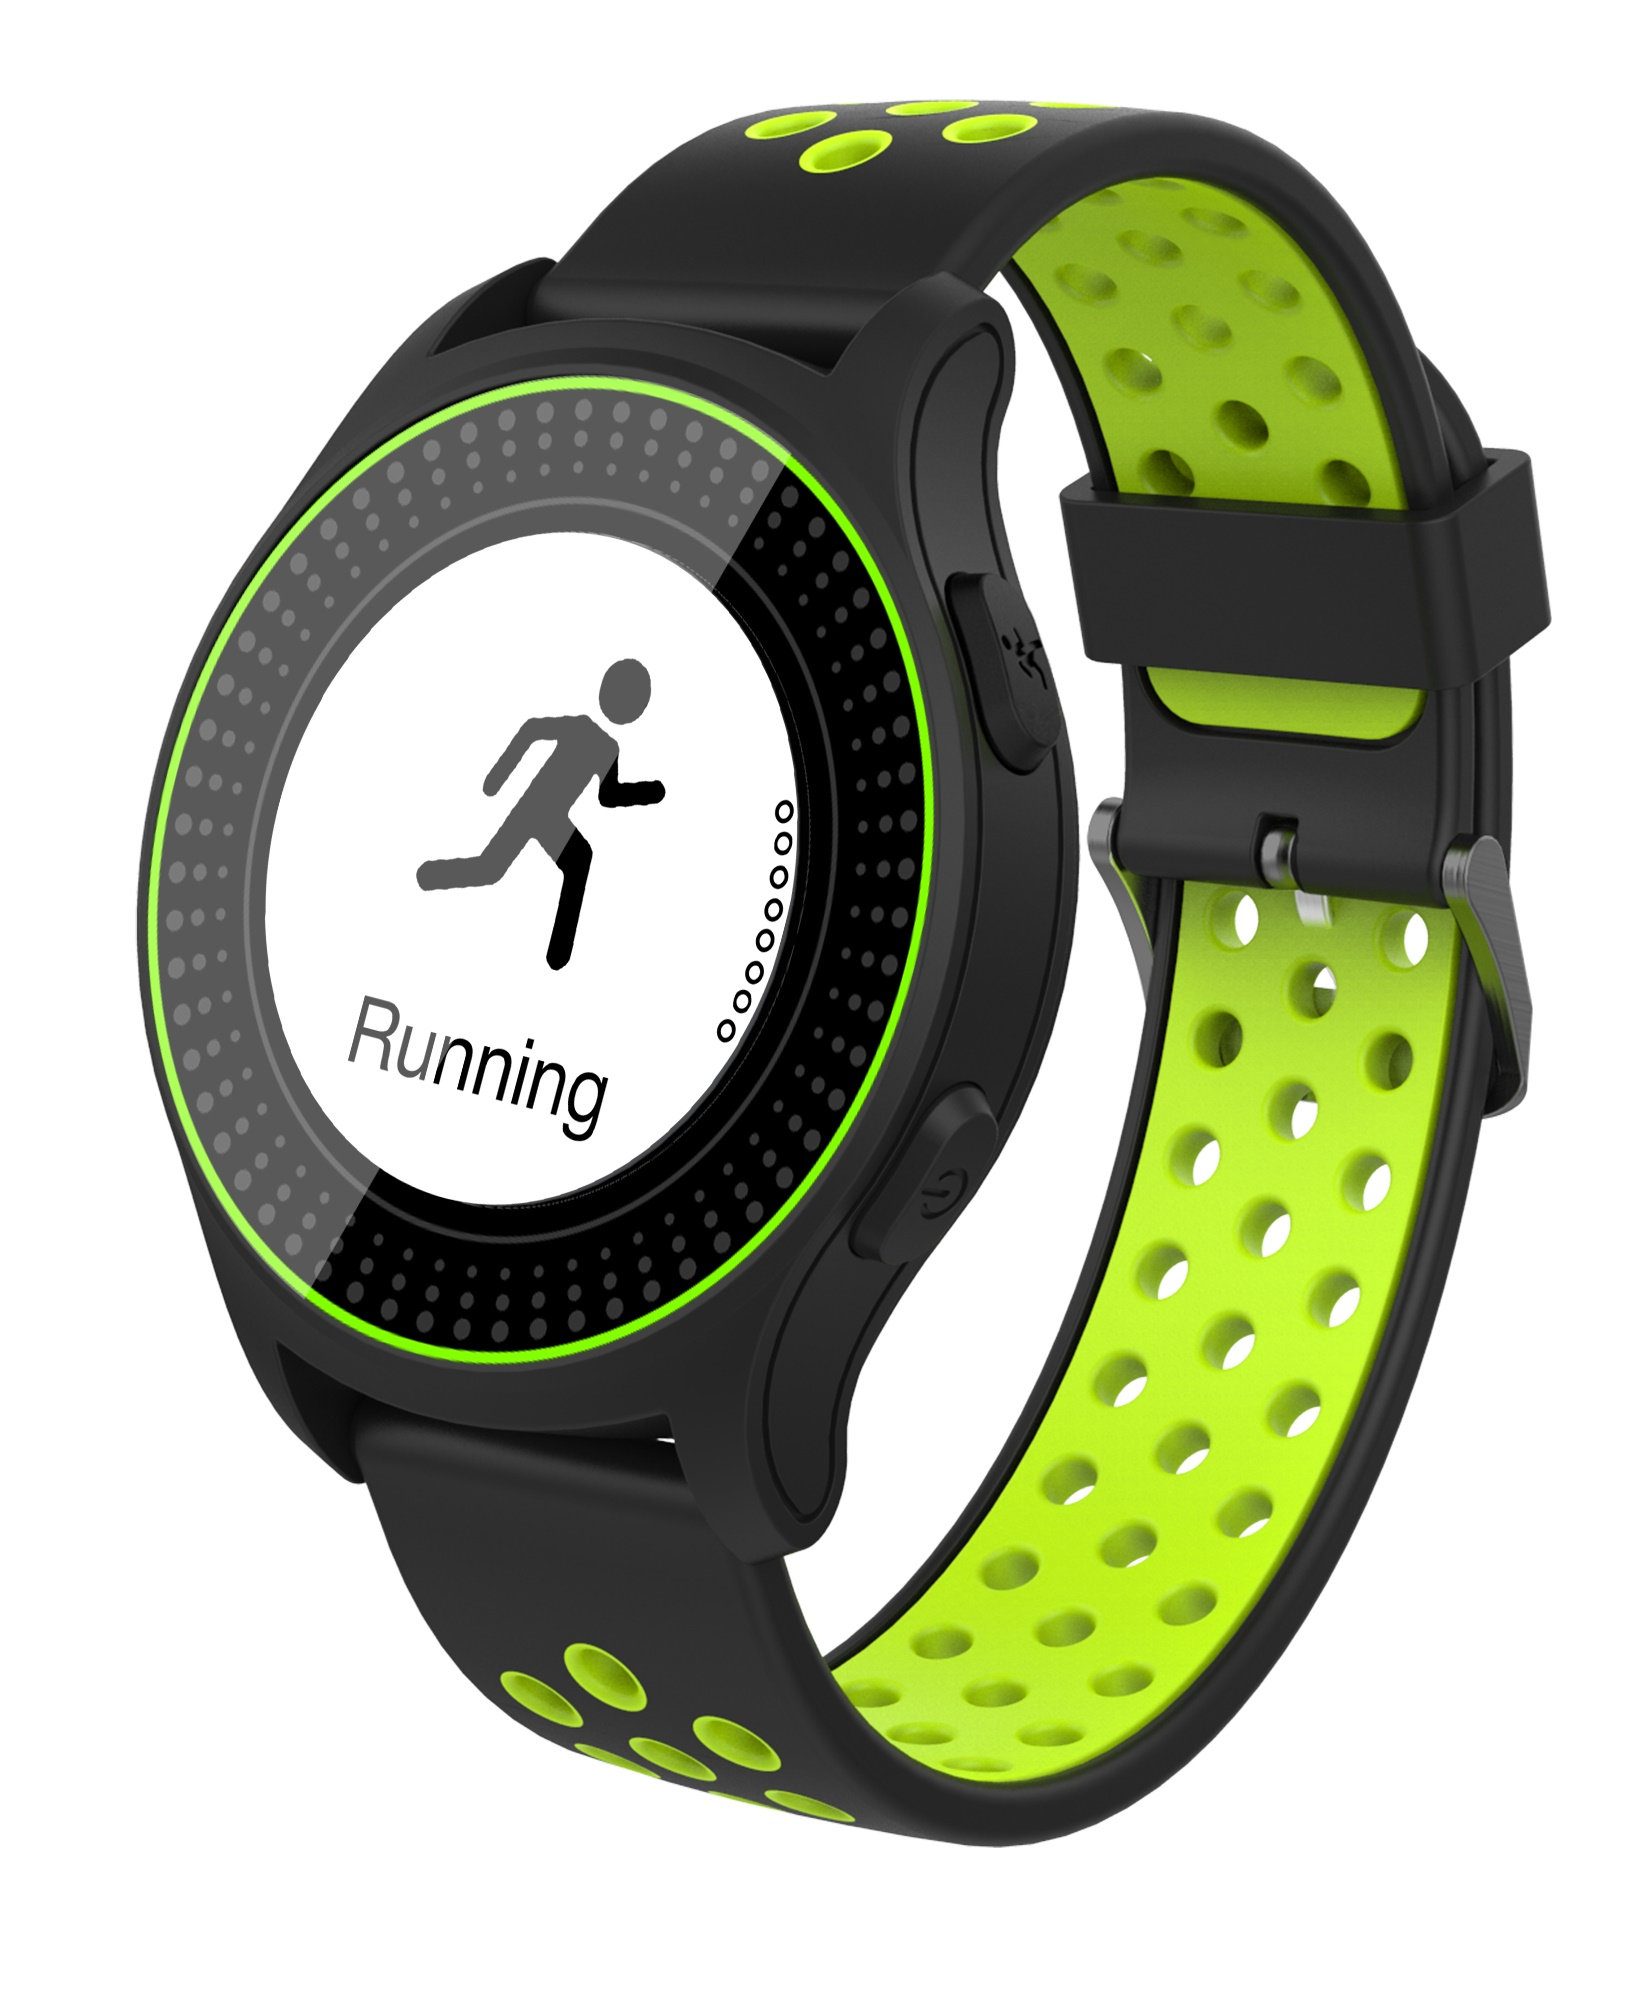 iGET ACTIVE A2 Green - chytré hodinky, IP68, LCD, GPS, BT 4.0, export STRAVA, 300 mAh, Multisport